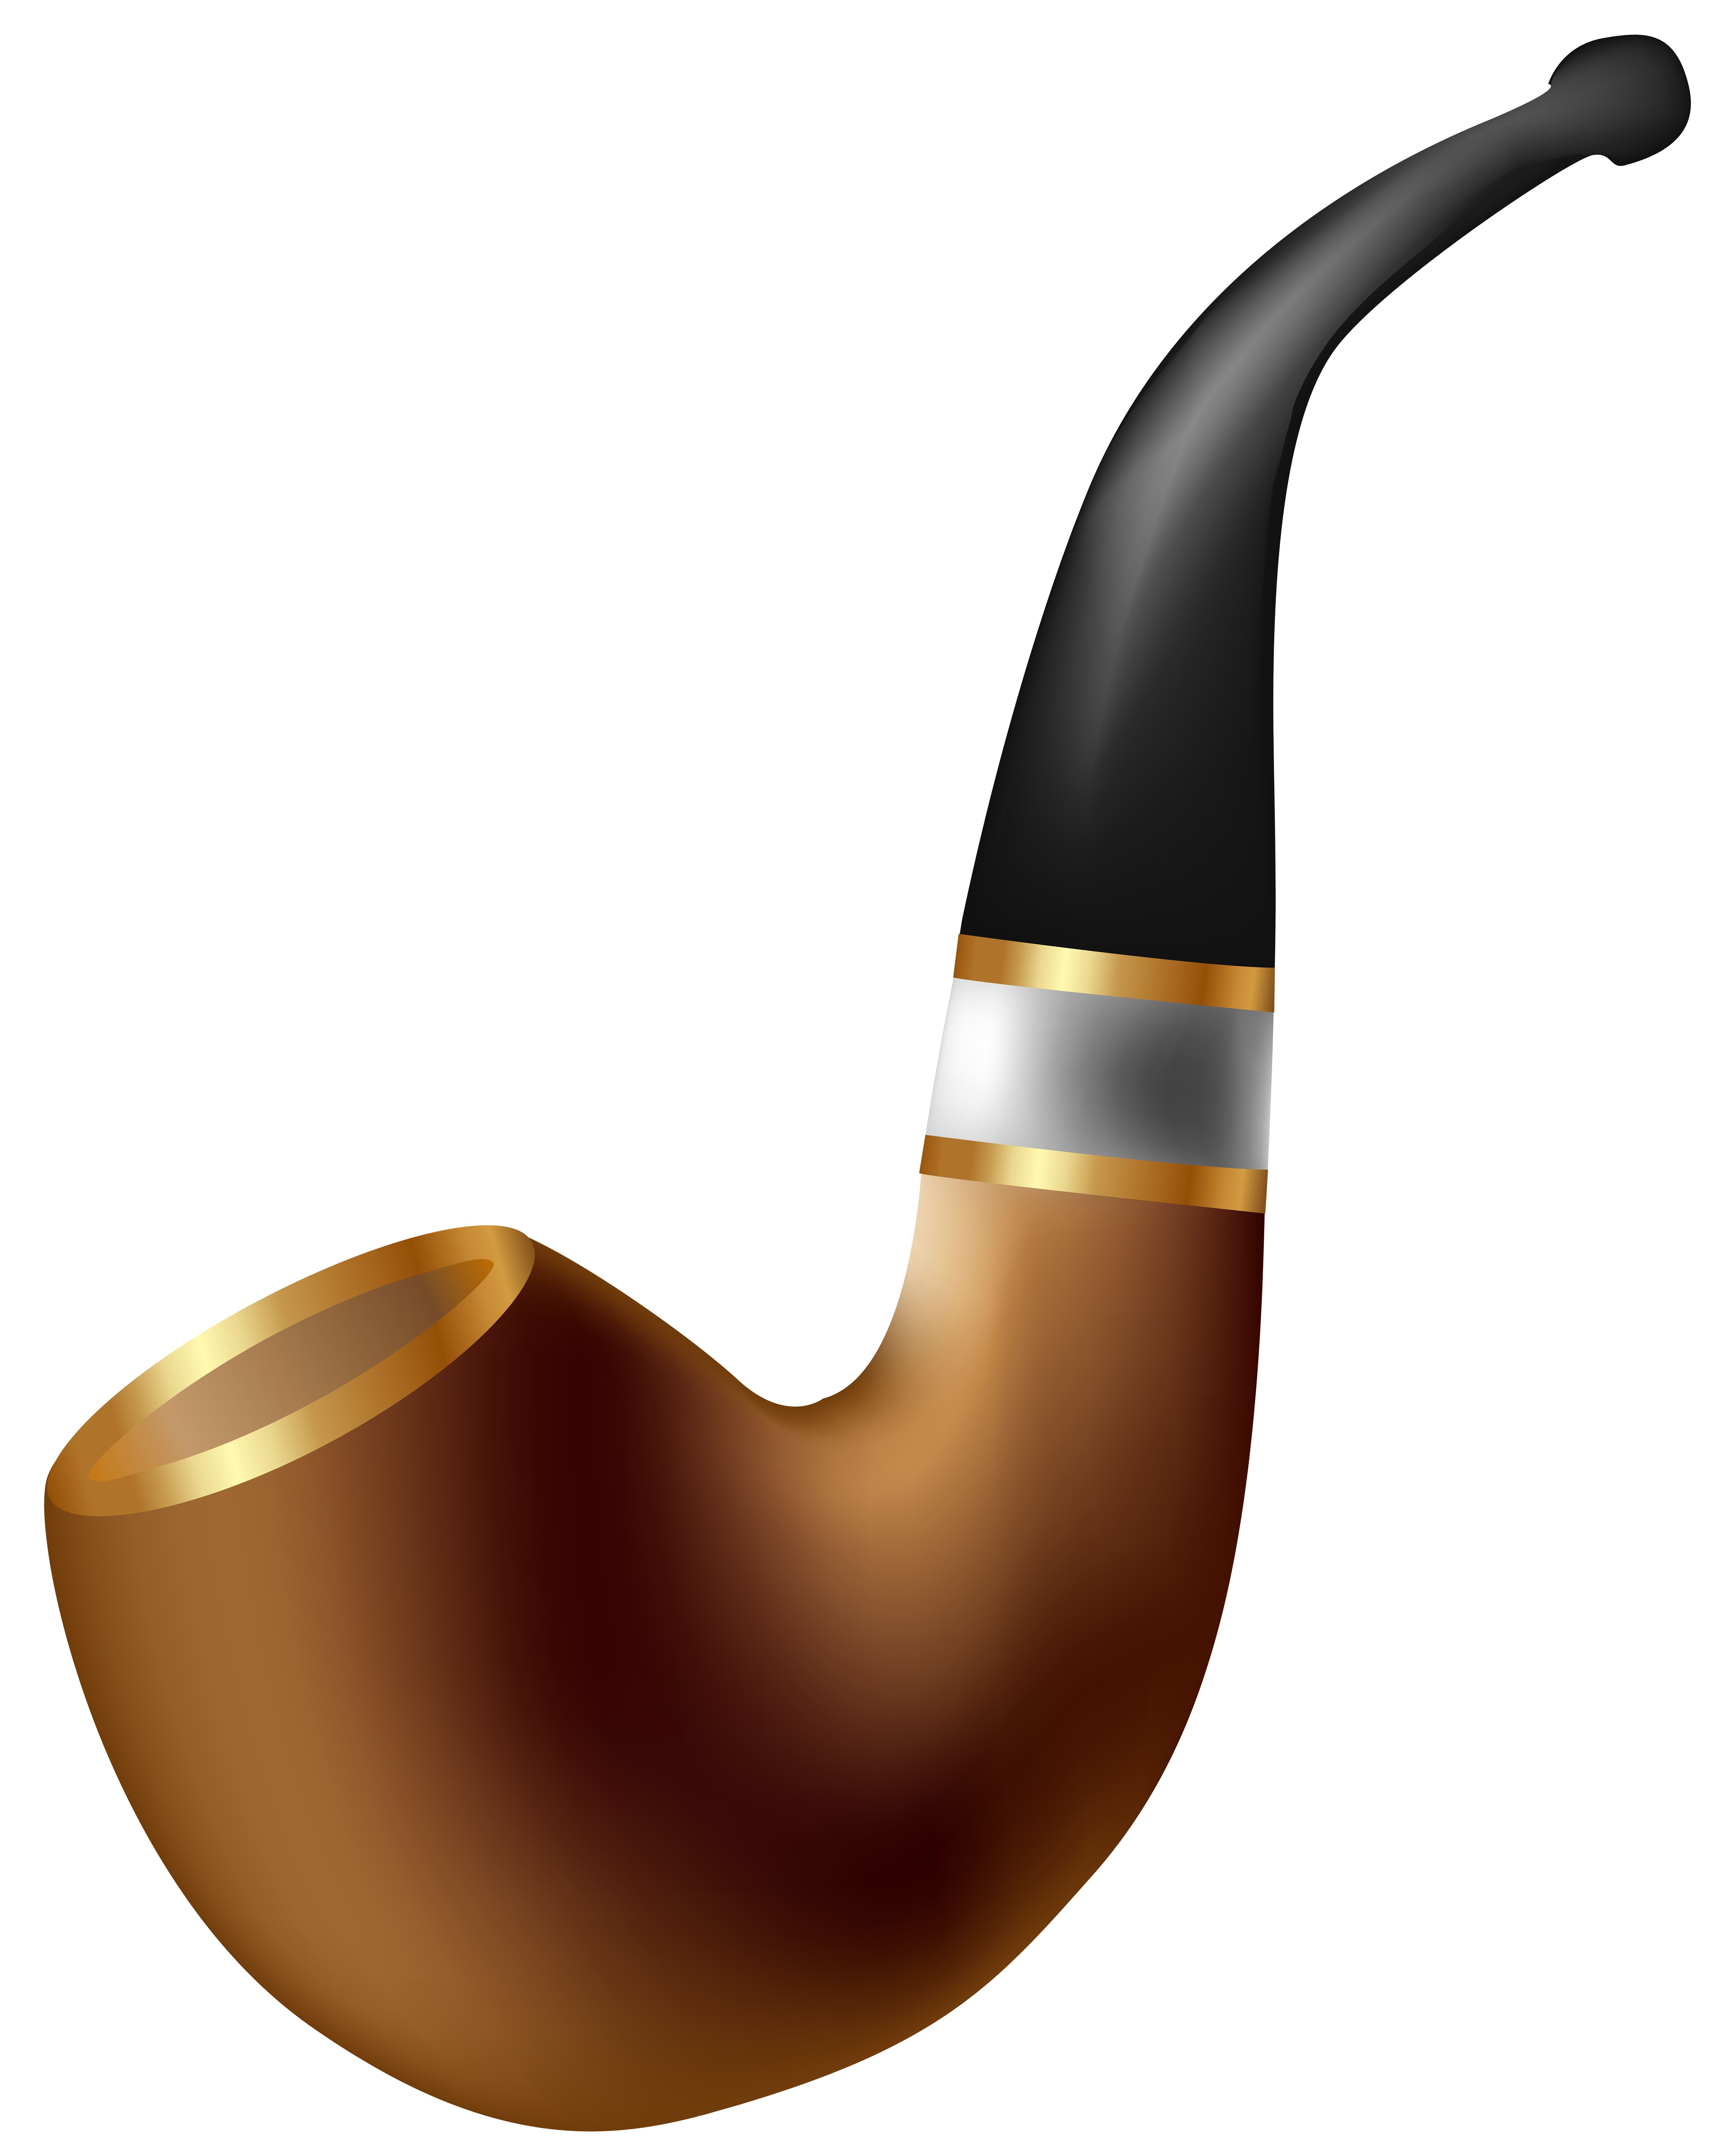 Cigar clipart blunt. Tobacco pipe png clip